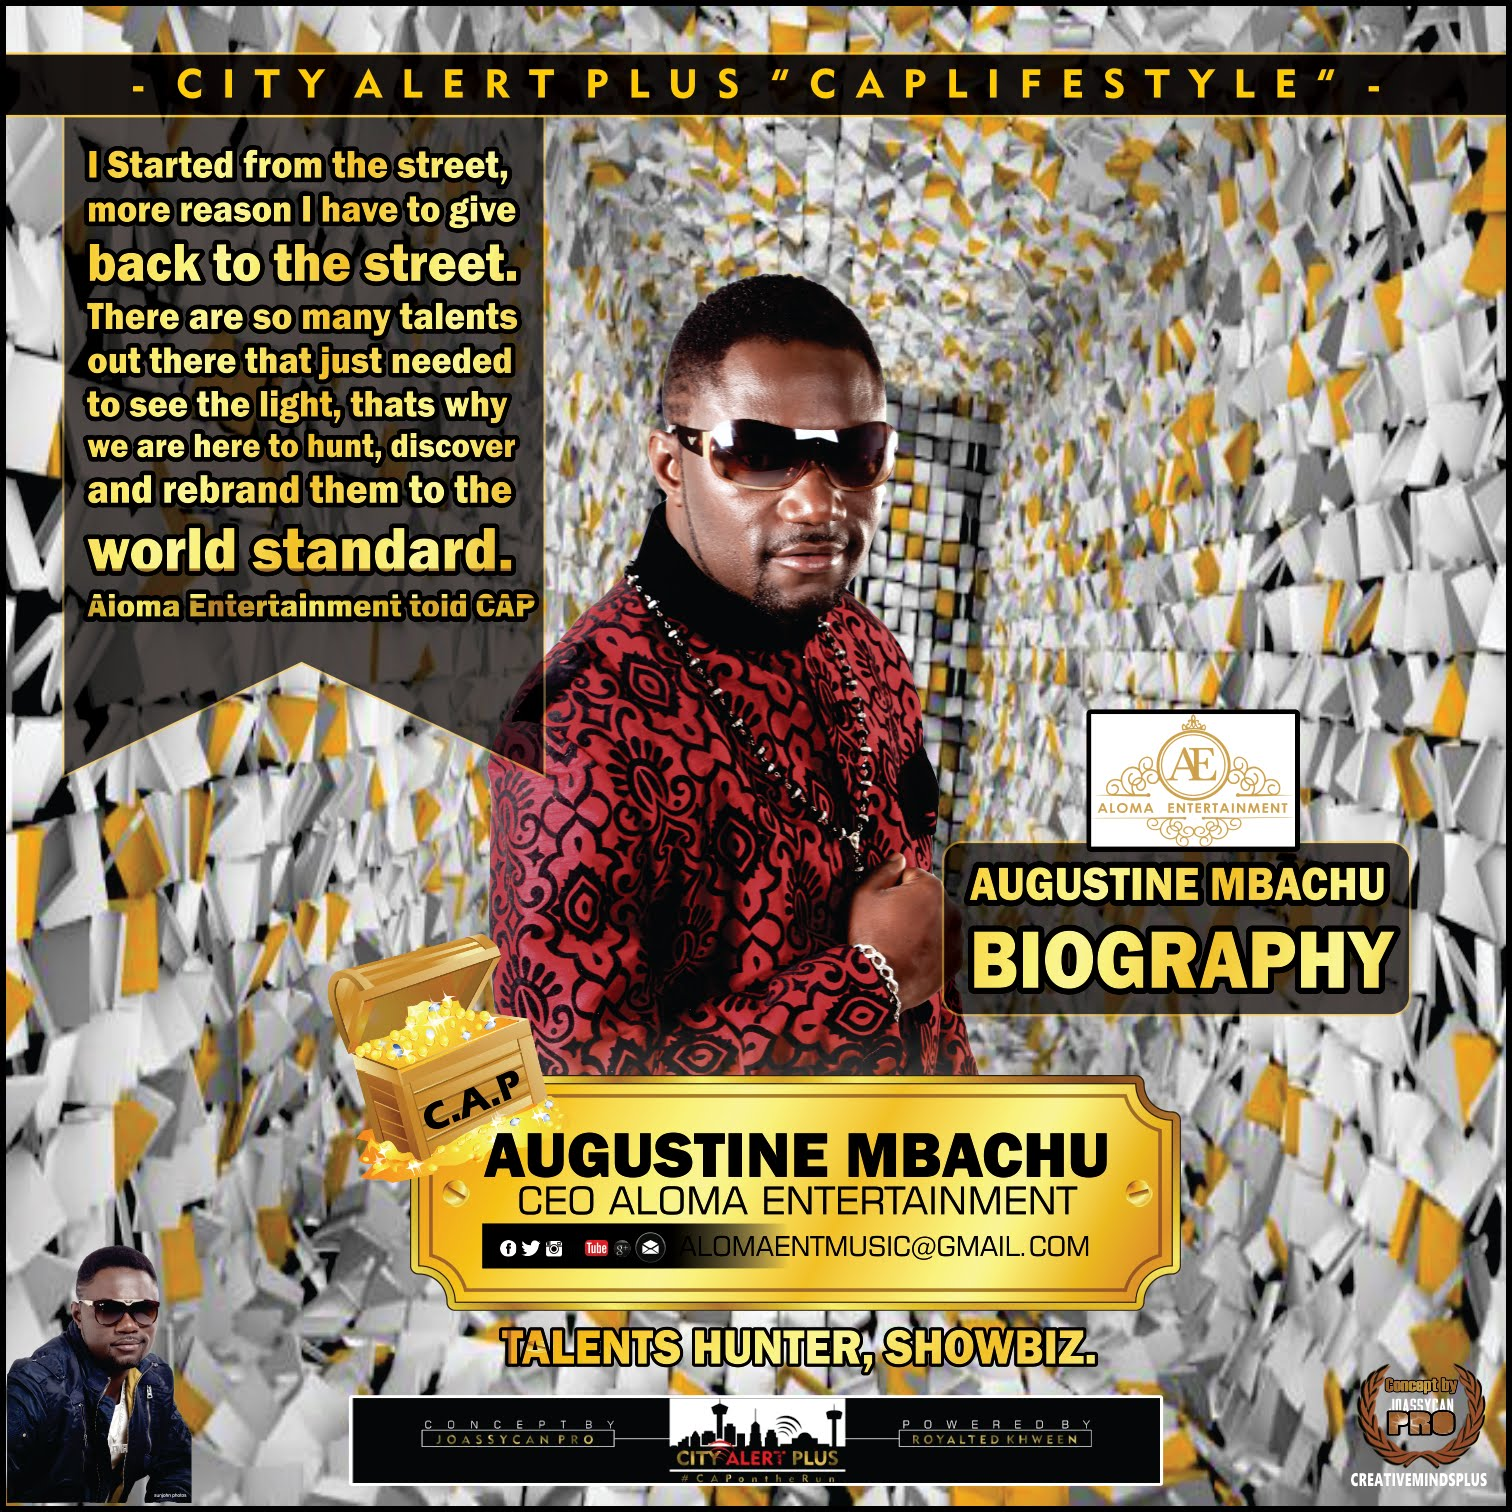 Augustine Mbachu Biography